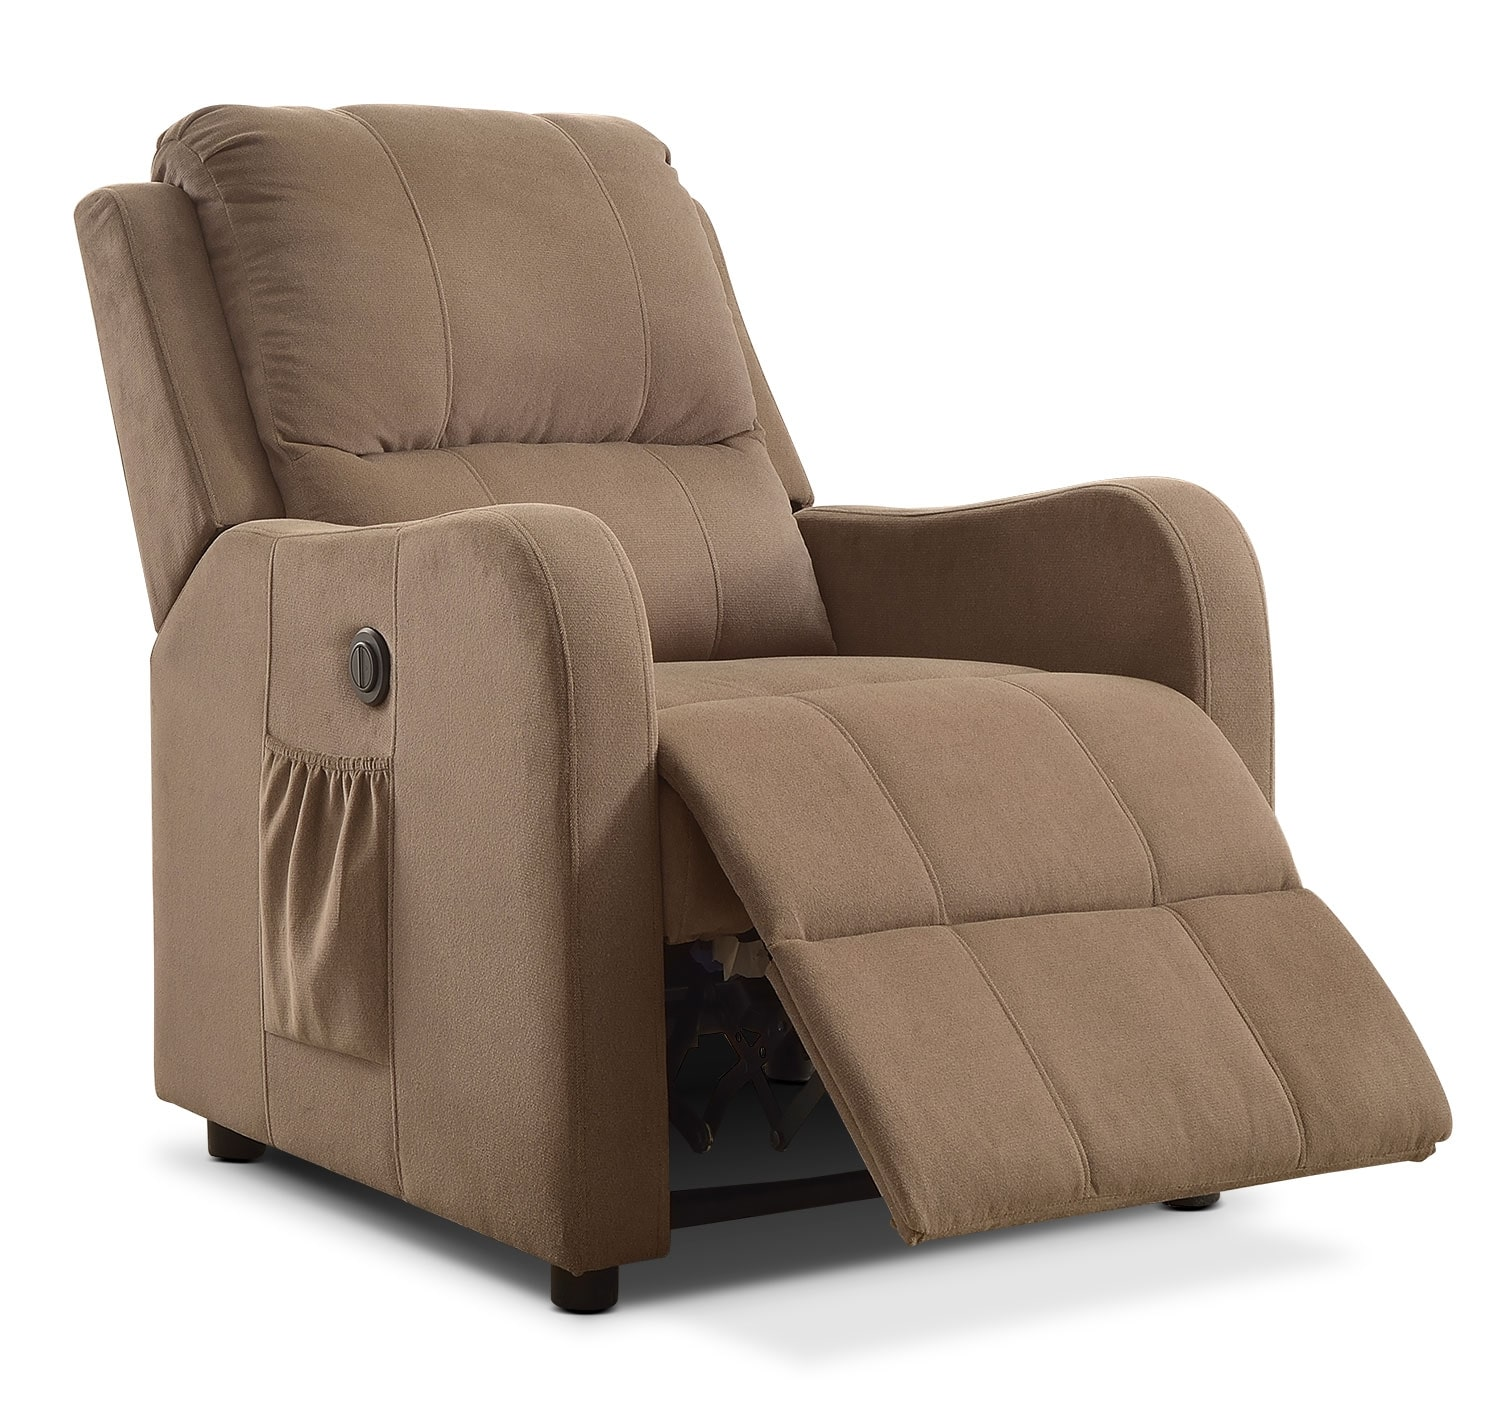 Living Room Furniture - Narnio Power Recliner